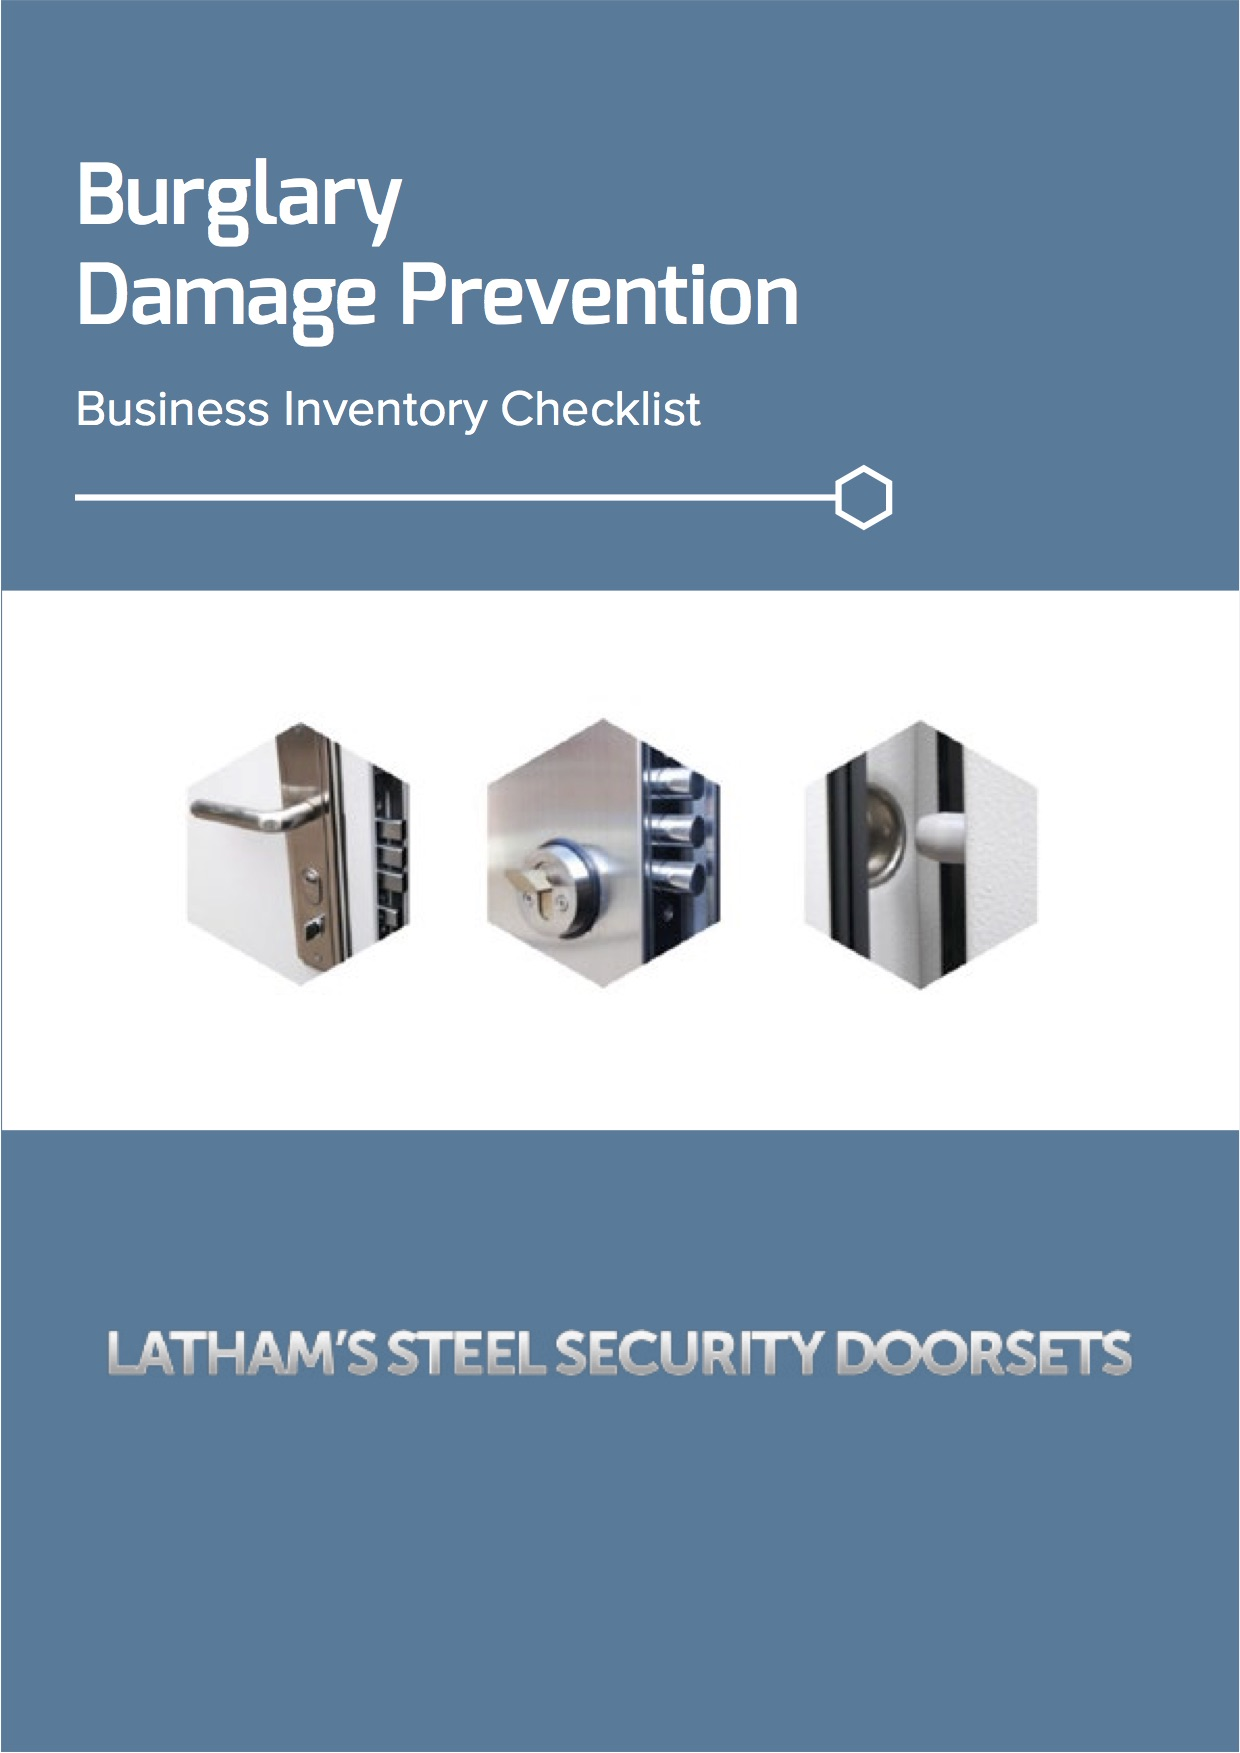 Burglary damage prevention checklist screenshot with three images showing a handle, bolts and dog bolt